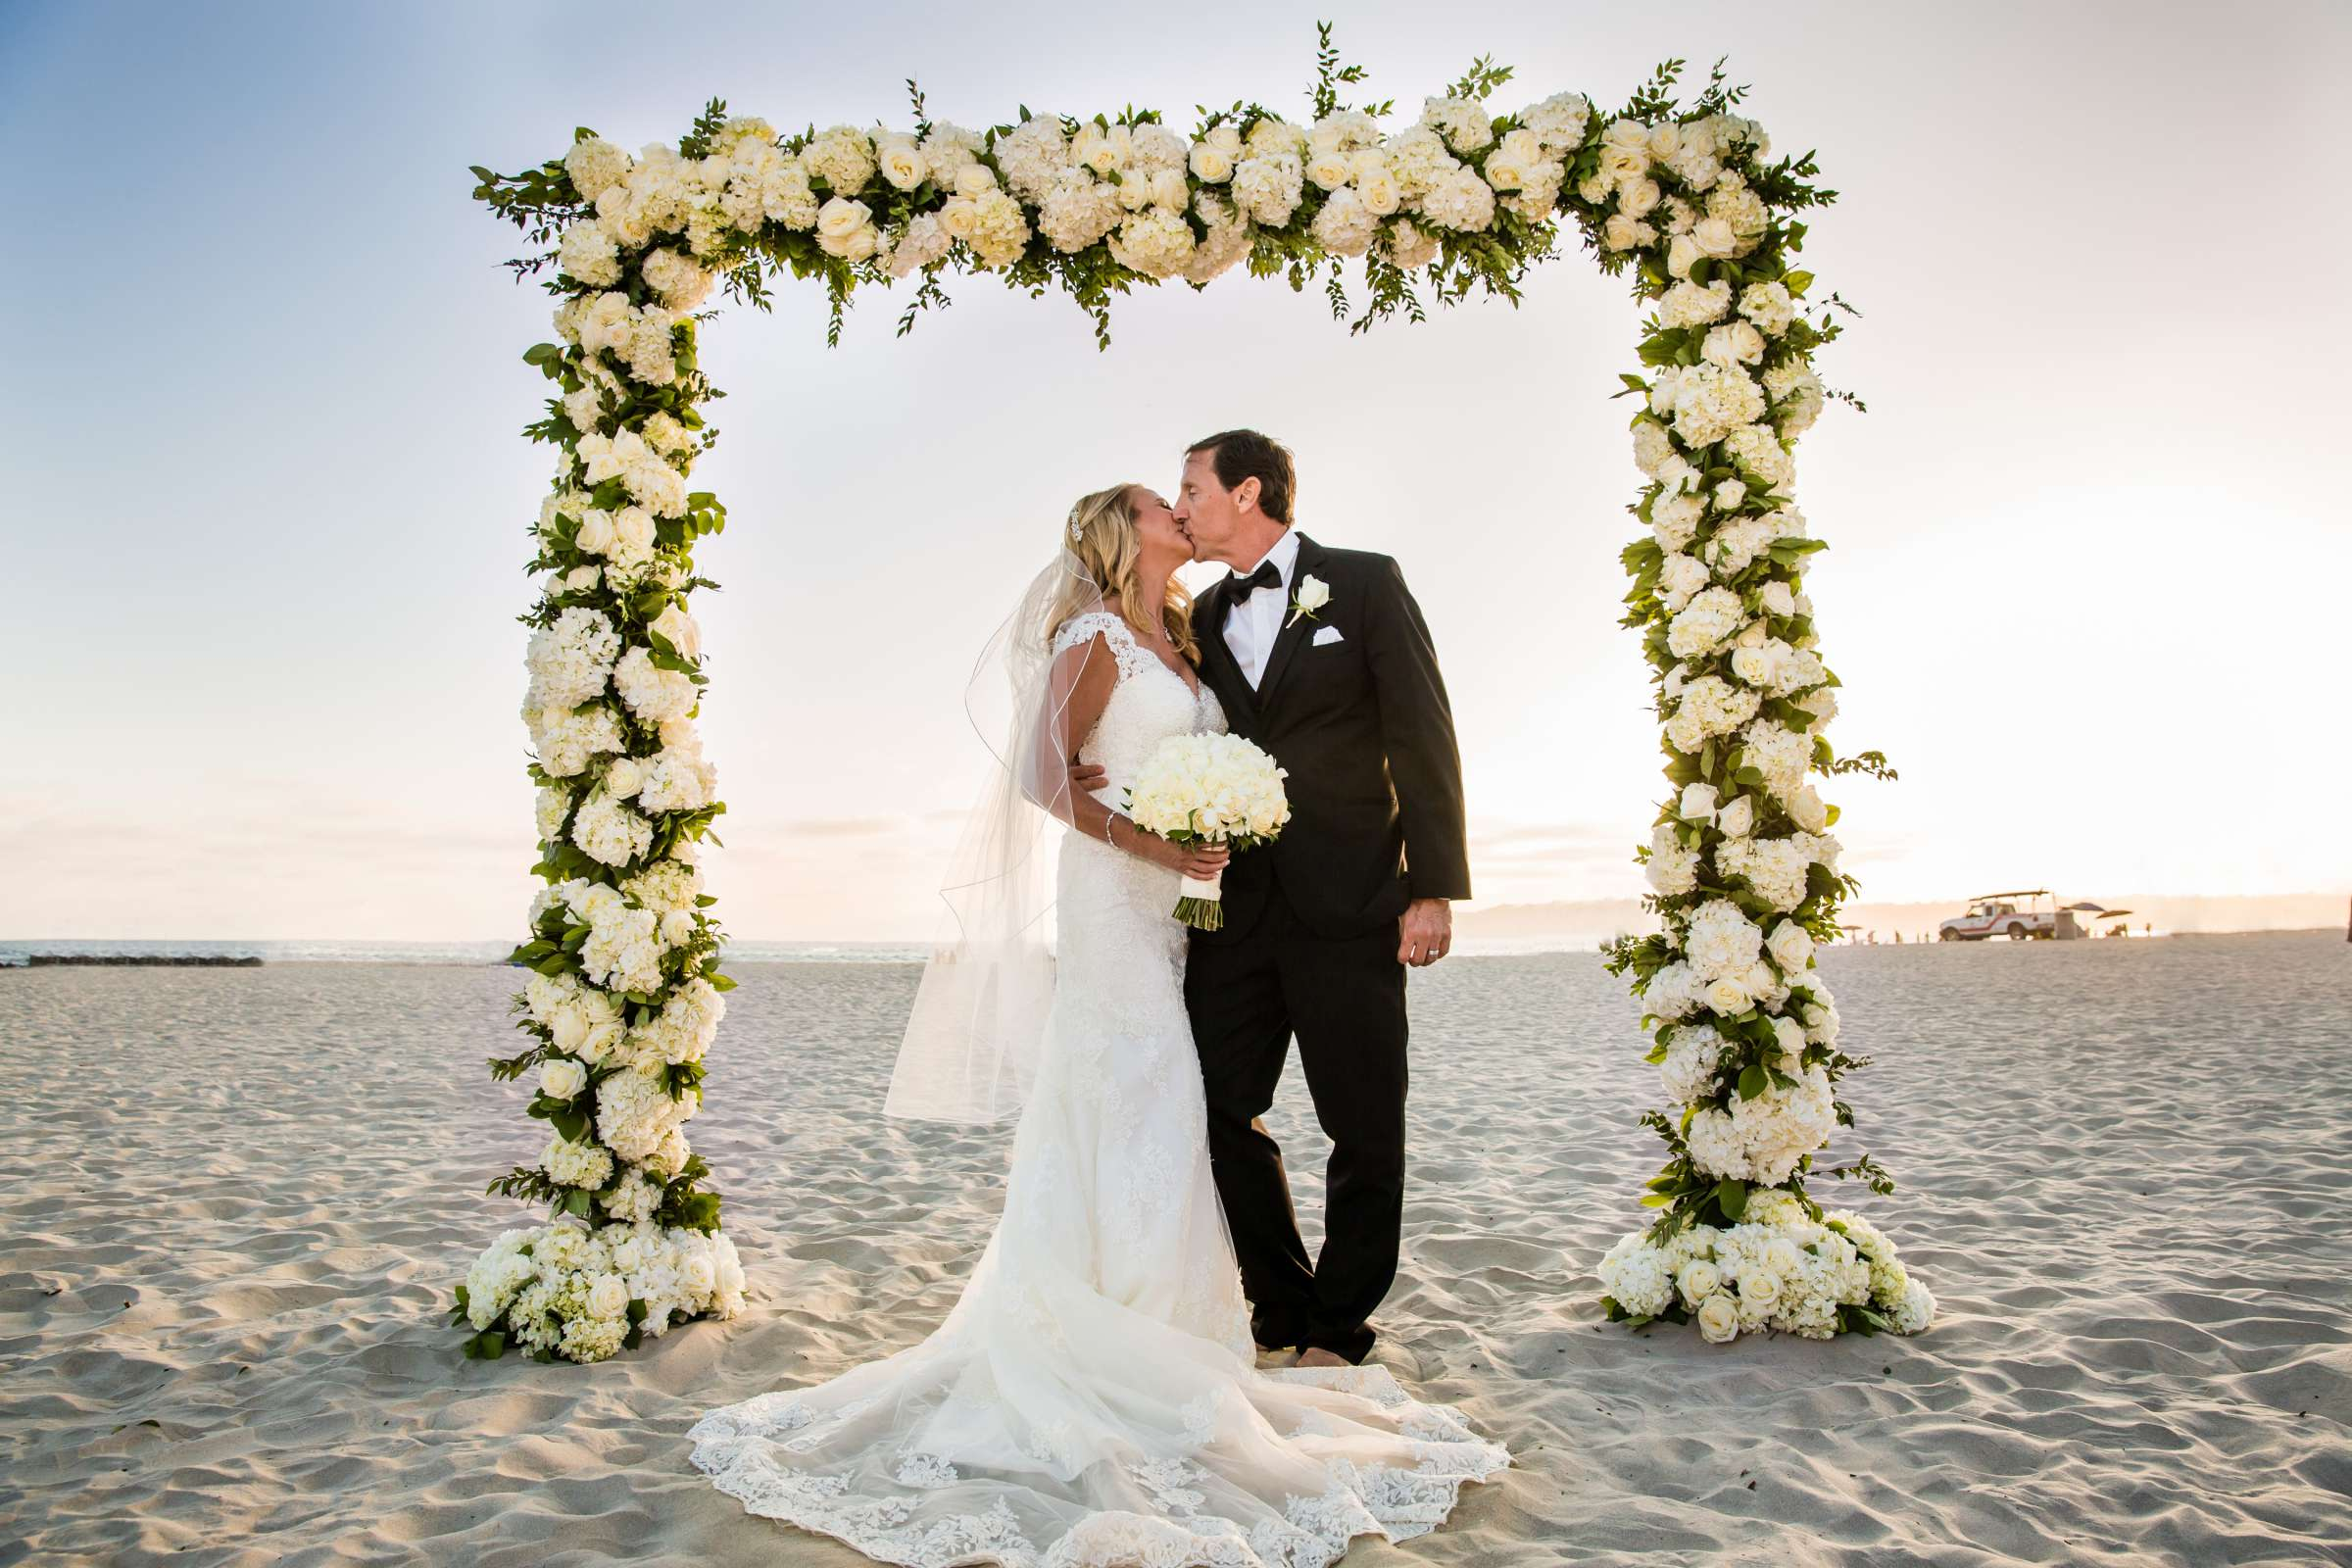 Hotel Del Coronado Wedding coordinated by Creative Affairs Inc, Diane and Paul Wedding Photo #20 by True Photography